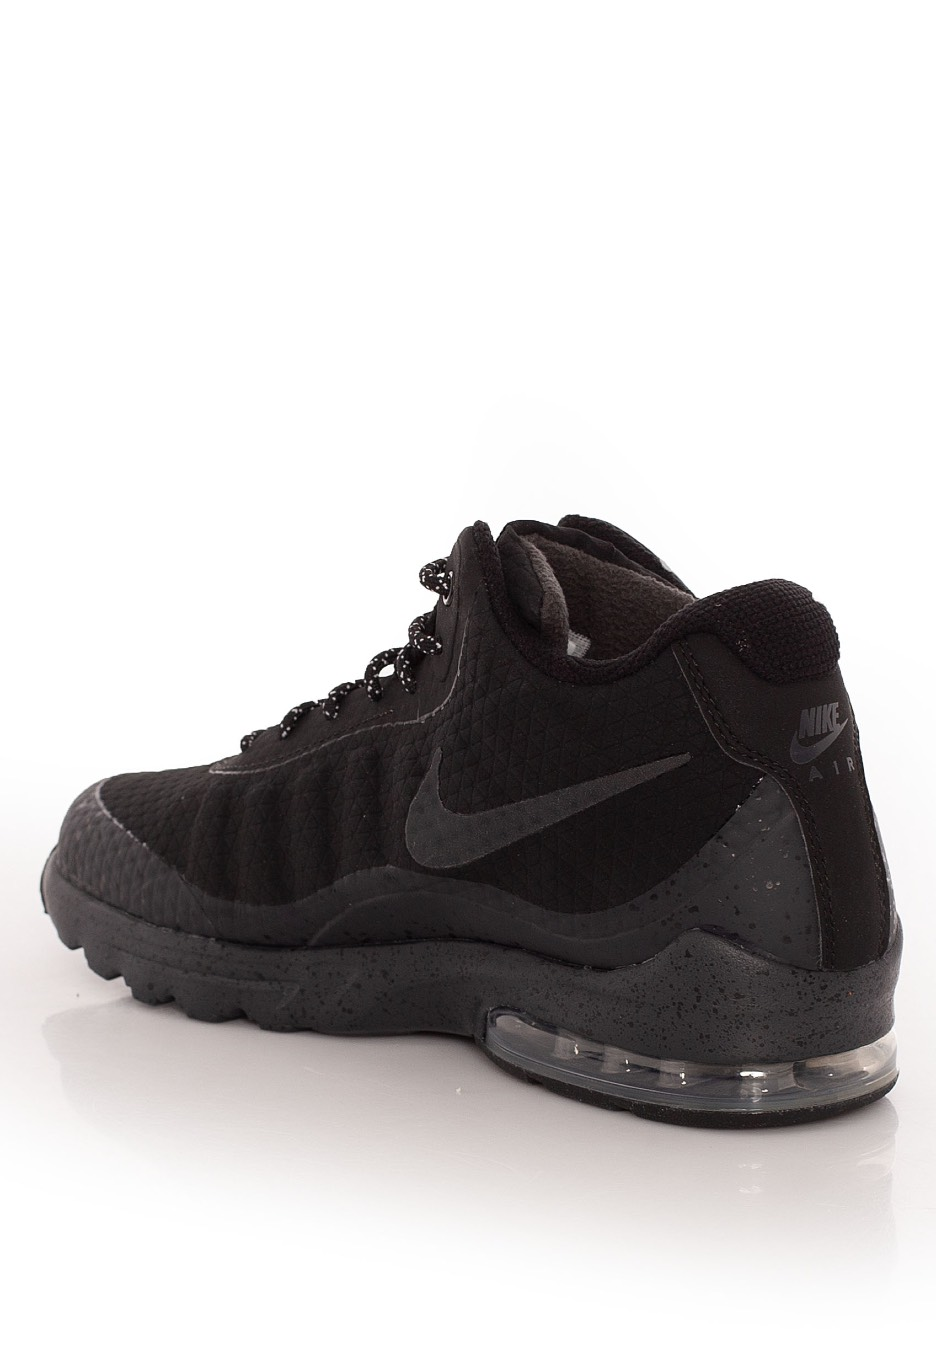 d9640e1defdf7 ... Nike - Air Max Invigor Mid Black Black Anthracite - Shoes ...